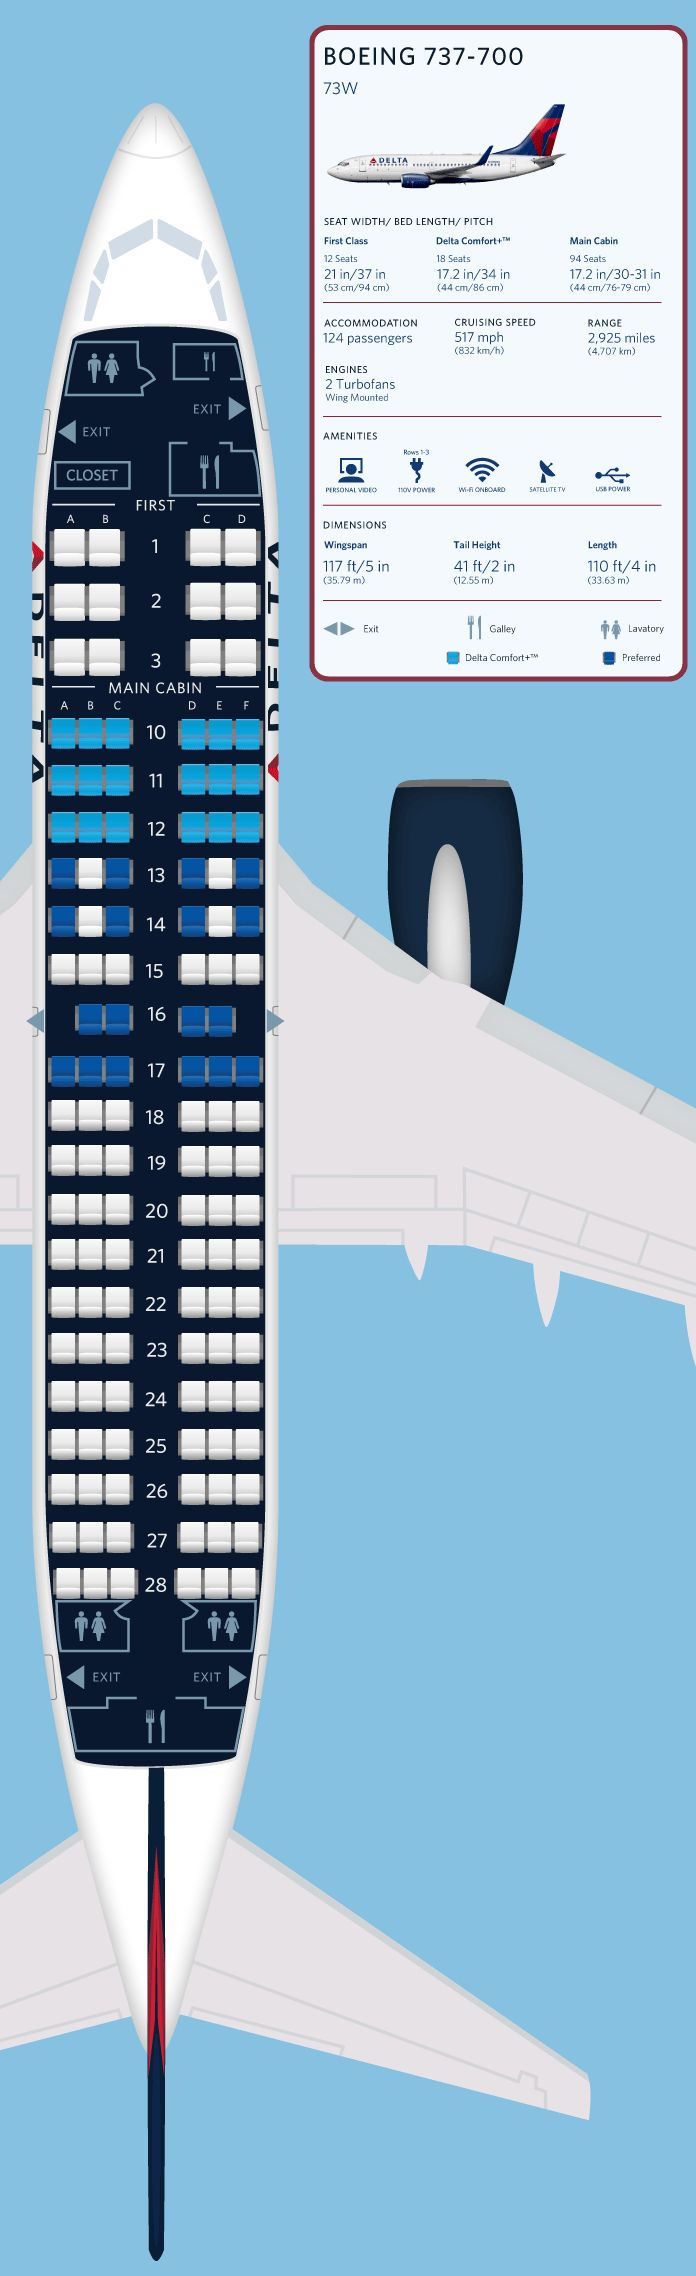 97 Best Images About Aircraft Seat Maps On Pinterest